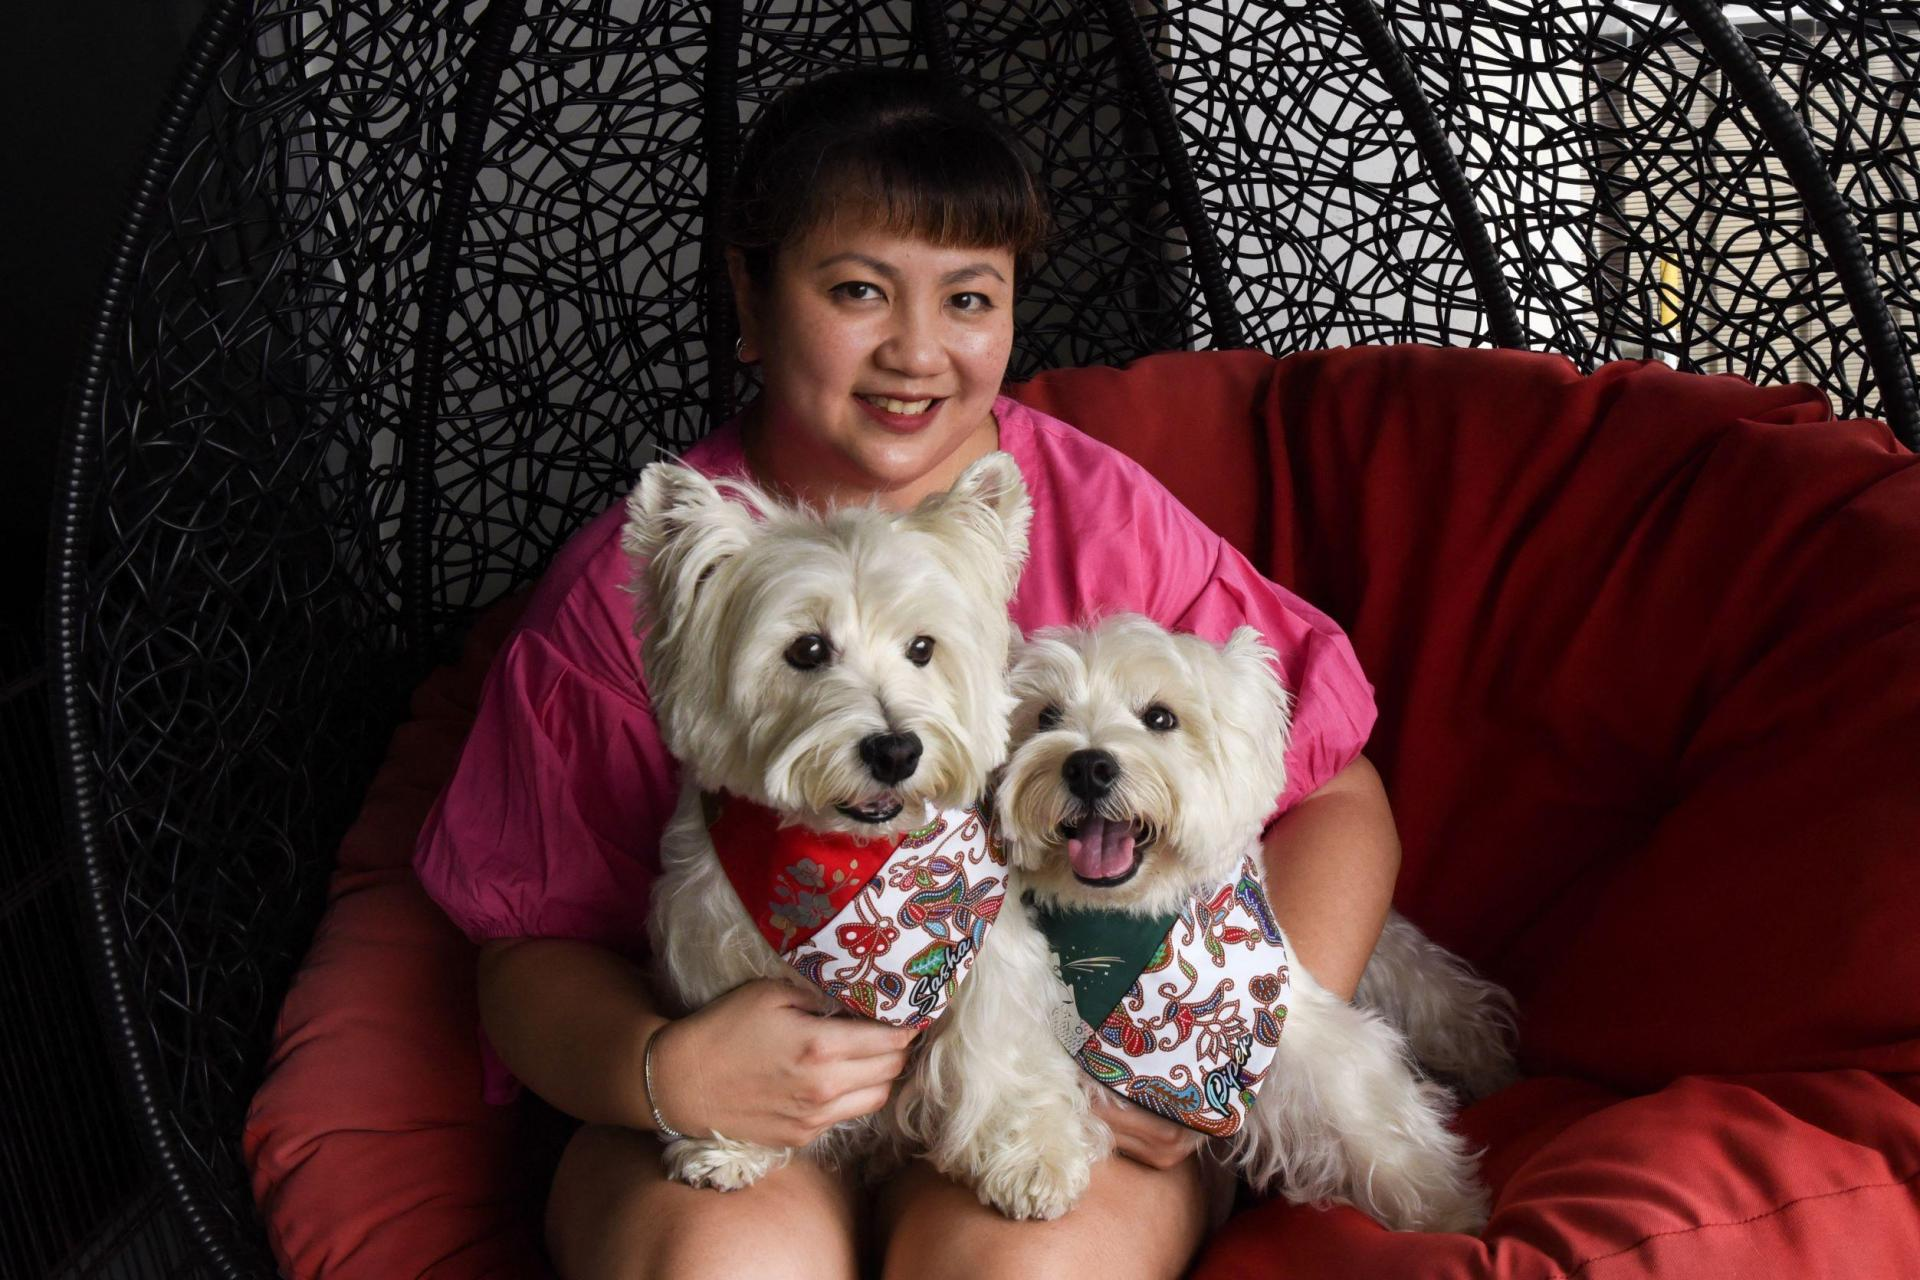 Dog owner Carrie Er with her pet white terriers Sasha and Piper (right) at her home in Singapore.